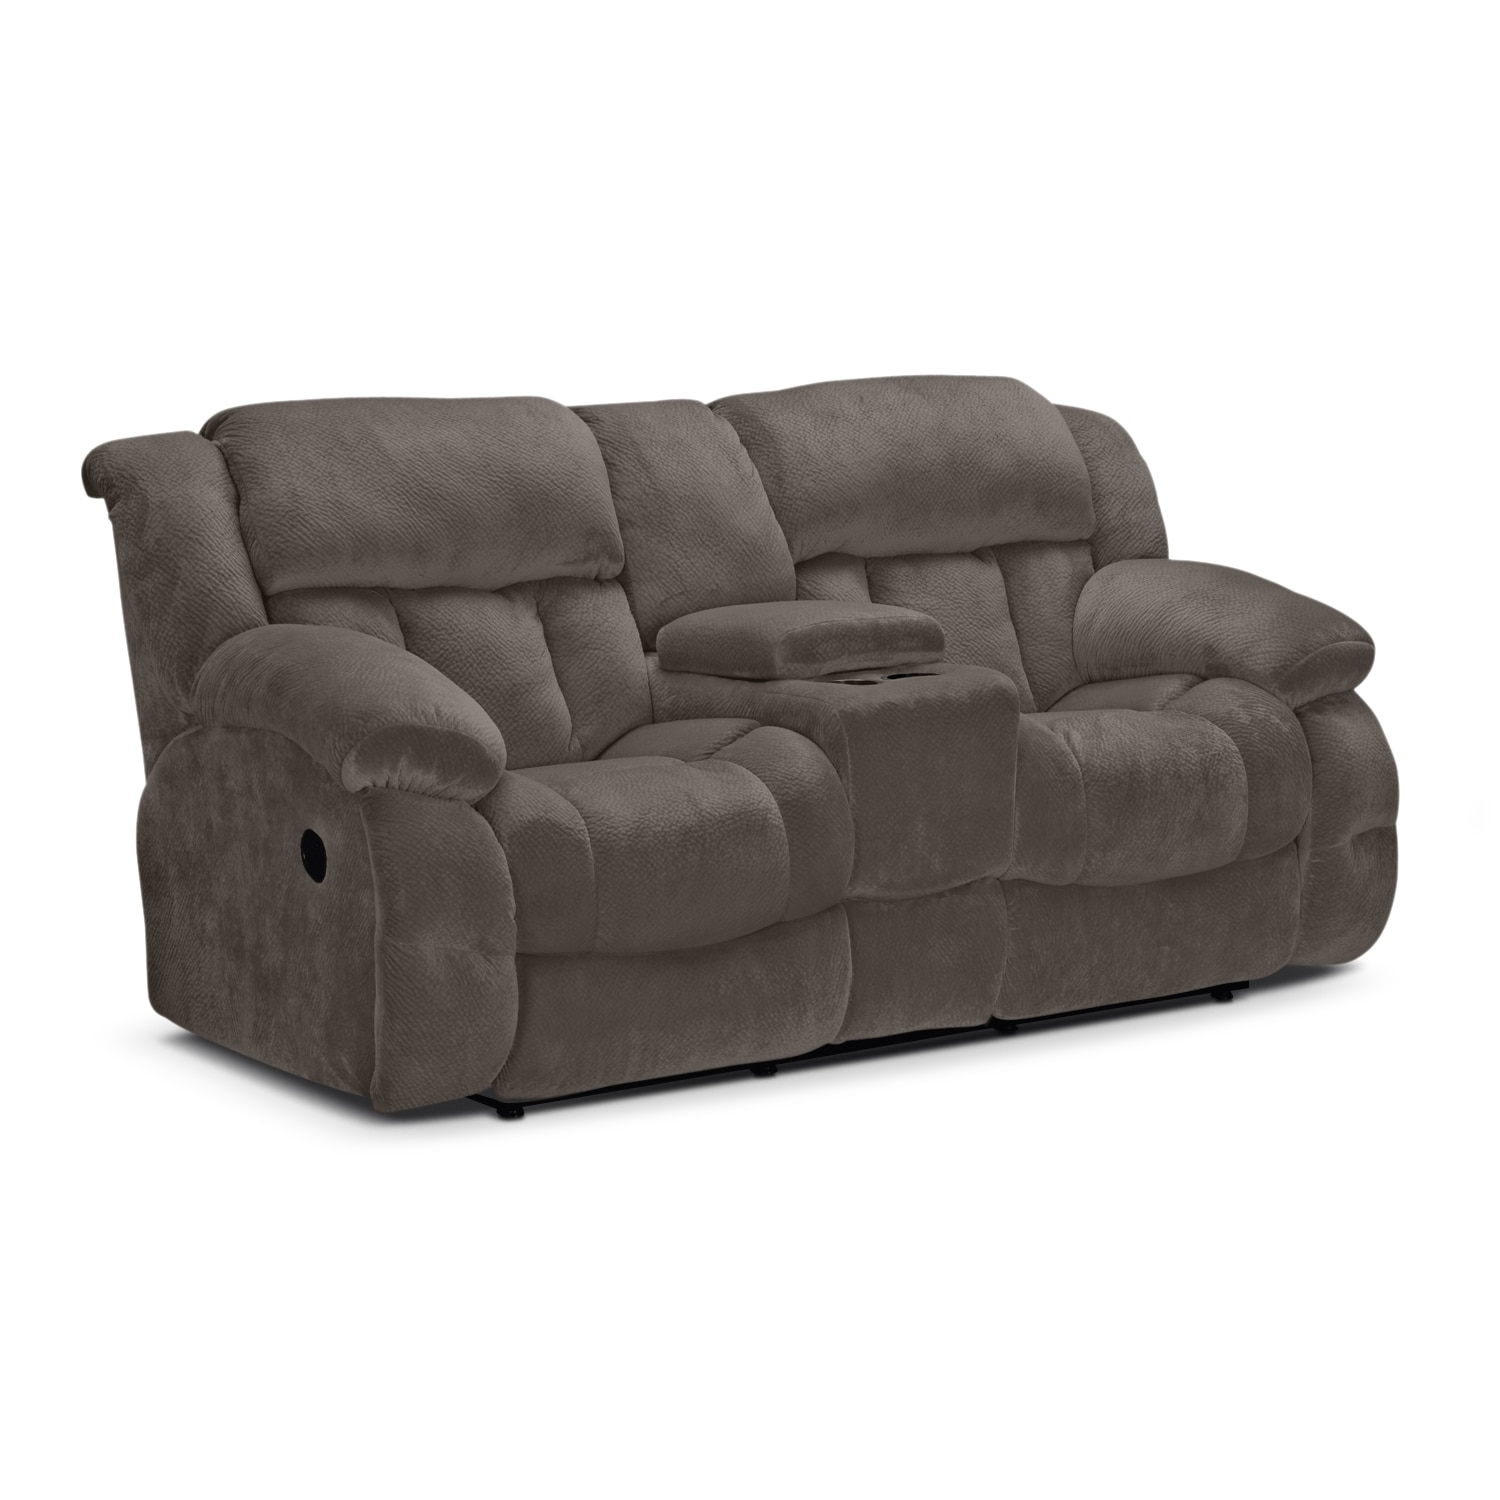 Park City Dual Reclining Loveseat